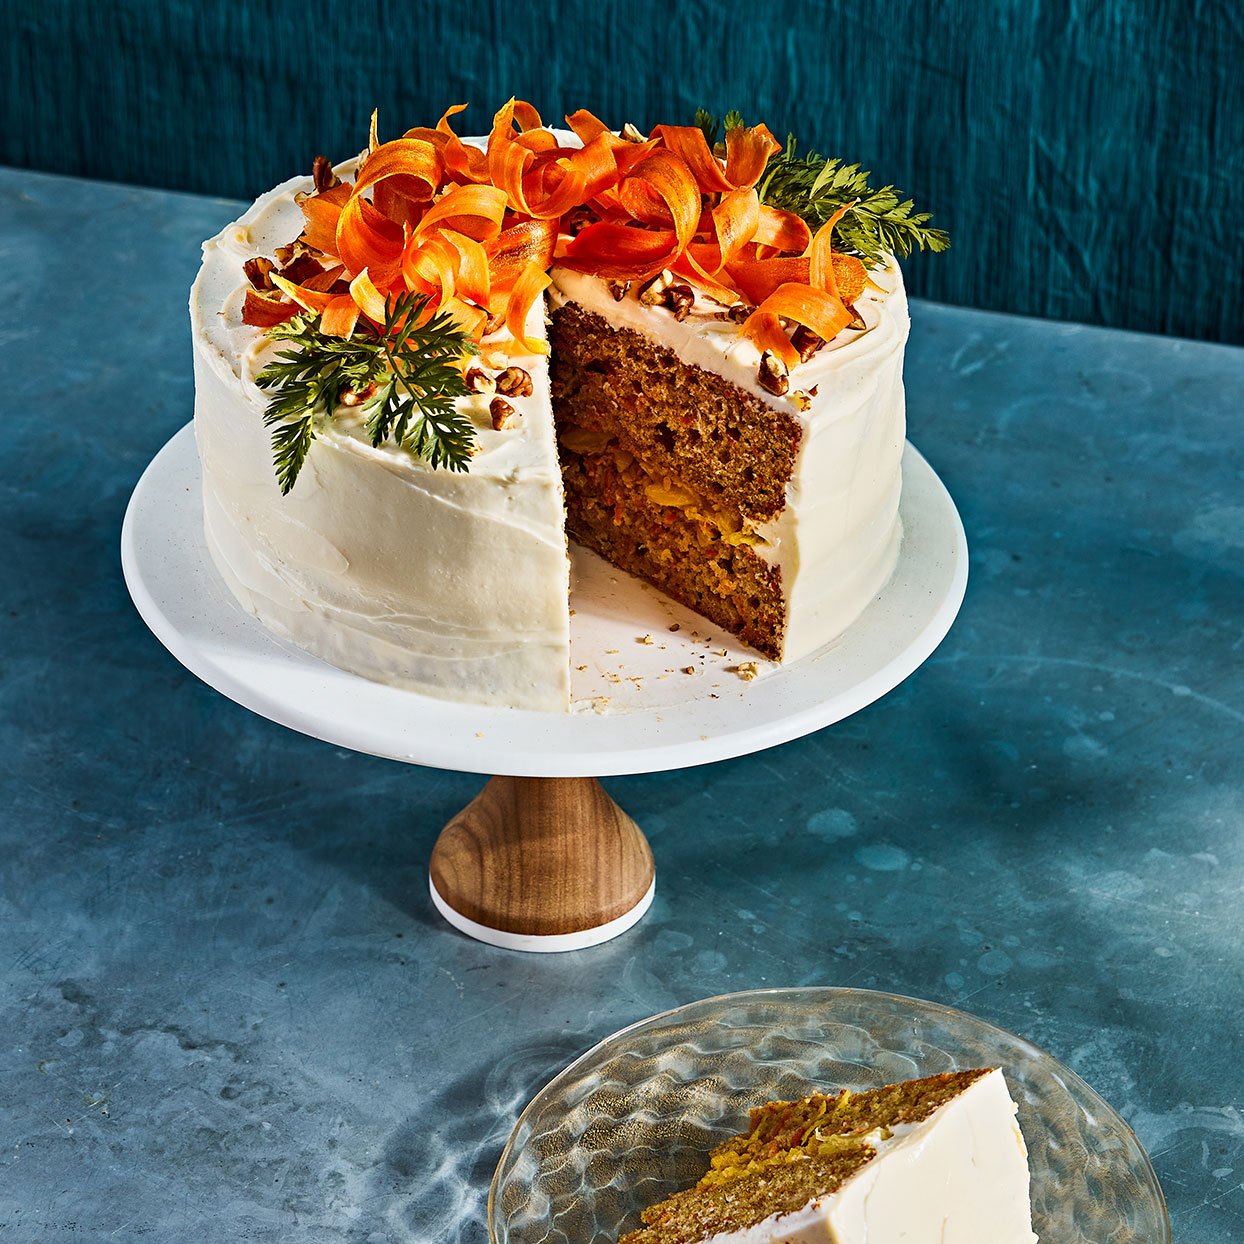 Our 30th anniversary deserved a cake, and what cake better represents EatingWell than one with vegetables? While many homemade carrot cakes include pineapple in the batter, we made a jammy filling with it instead to tuck between the layers.